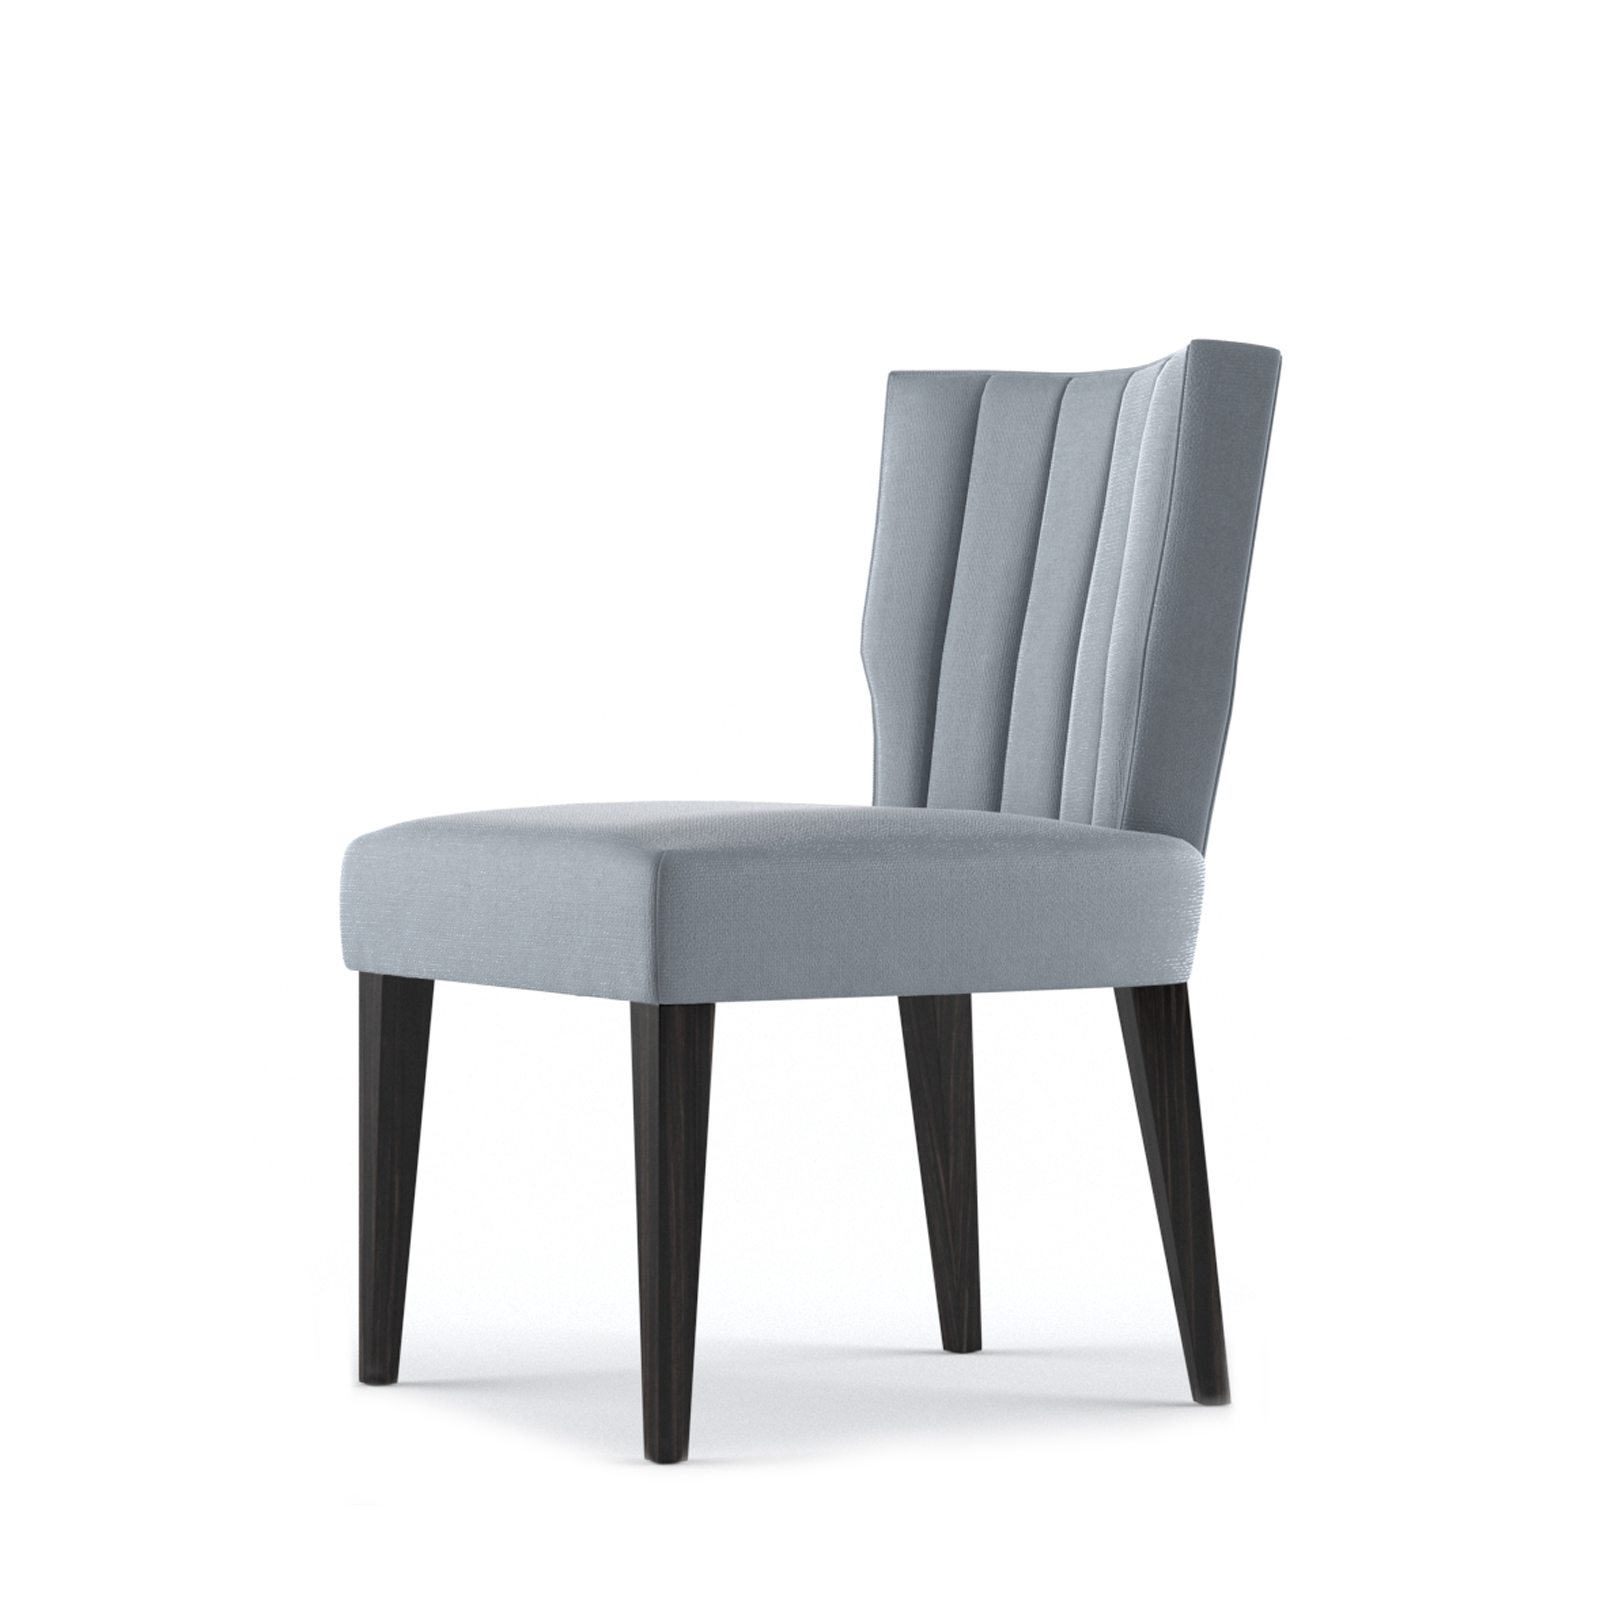 Heath-Dining-Chair-by-Bonham-&-Bonham-04